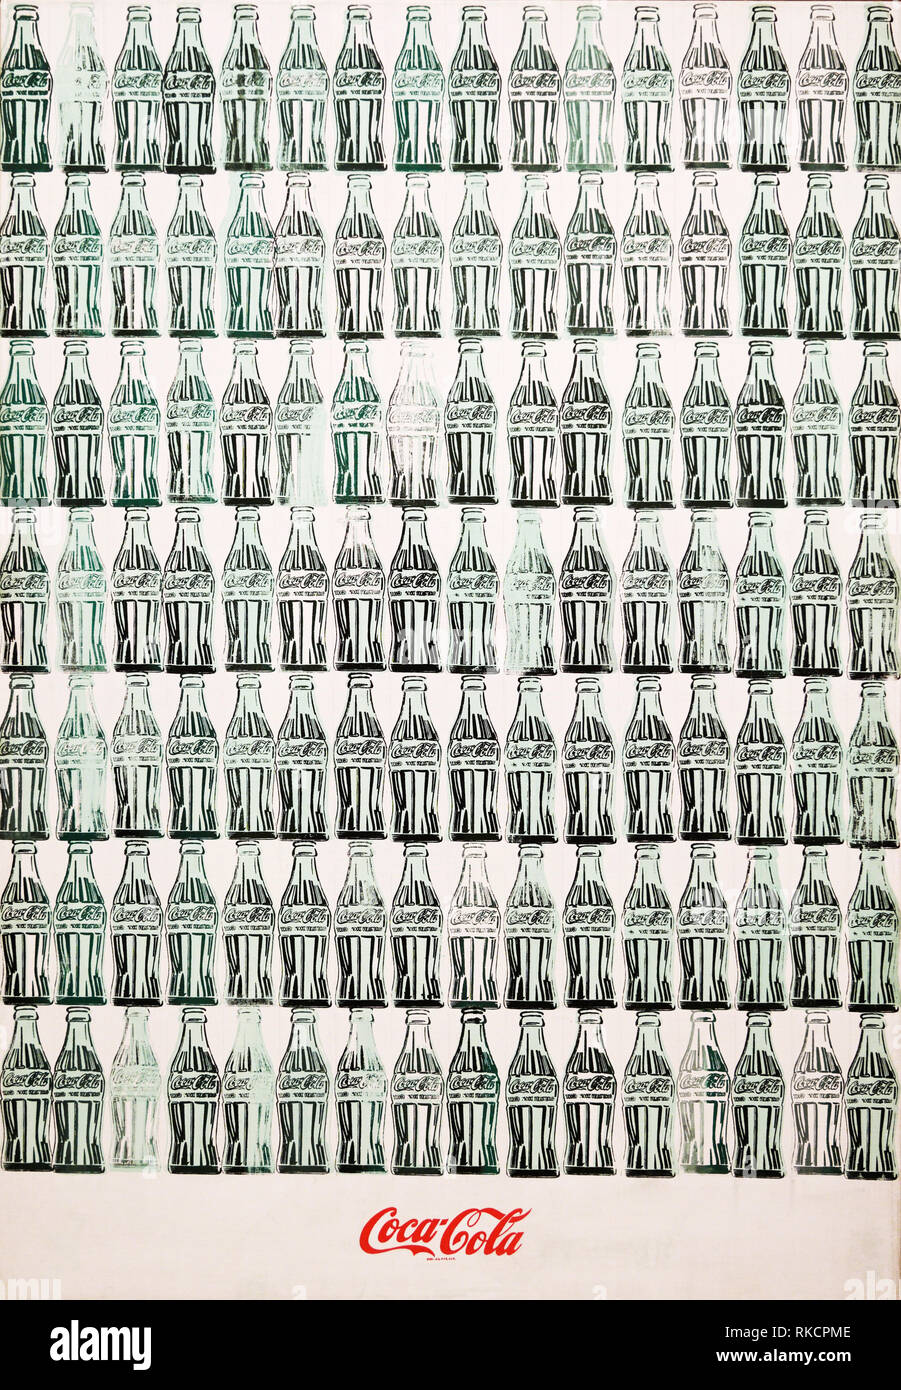 Green Coca-Cola bottles, 1962, Andy Warhol - Stock Image